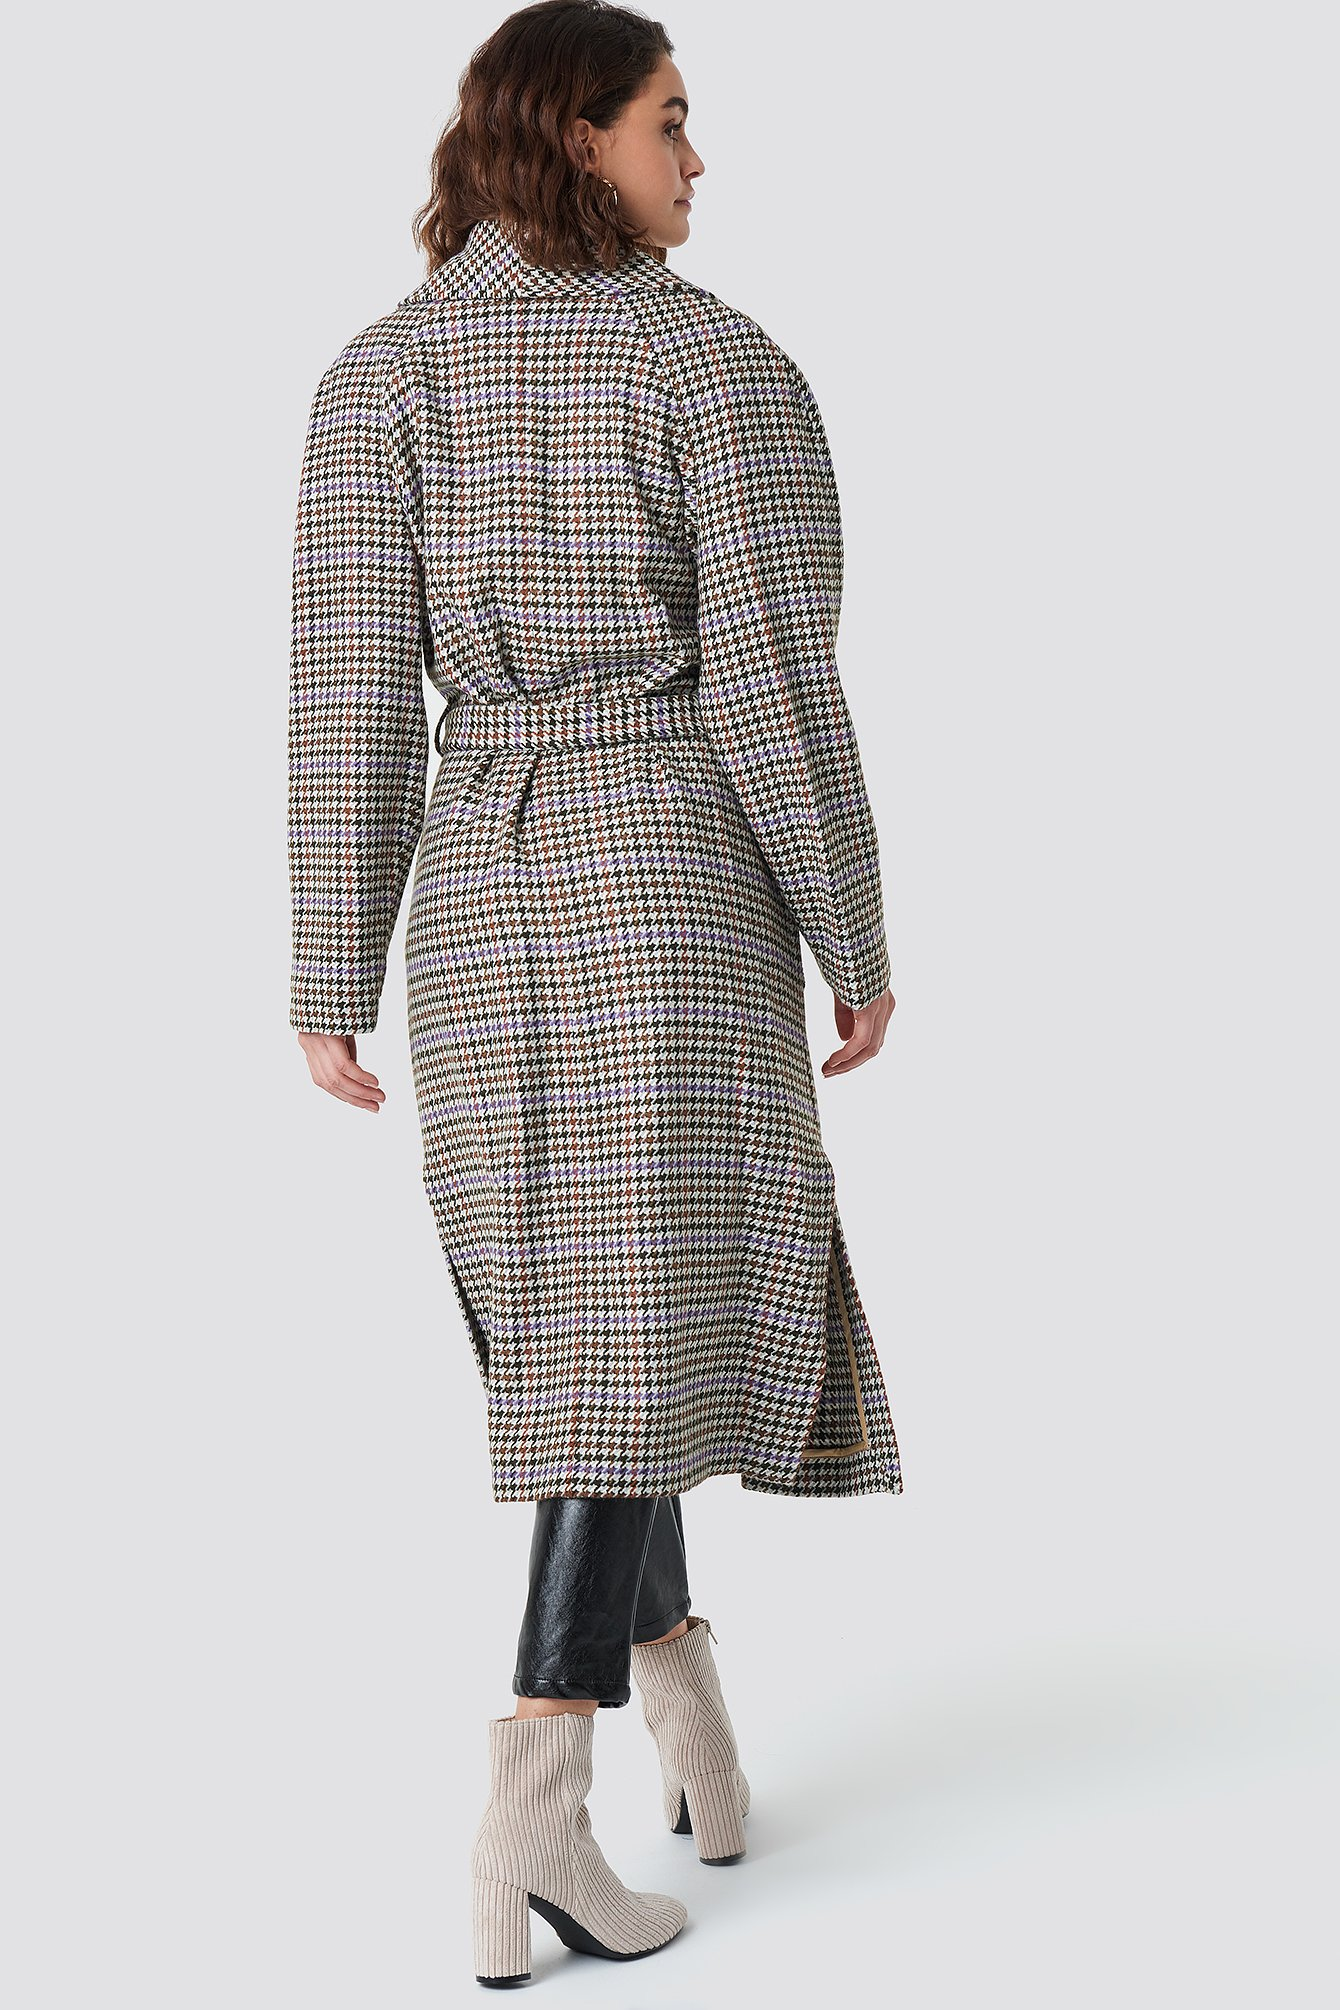 Welle Check Coat NA-KD.COM